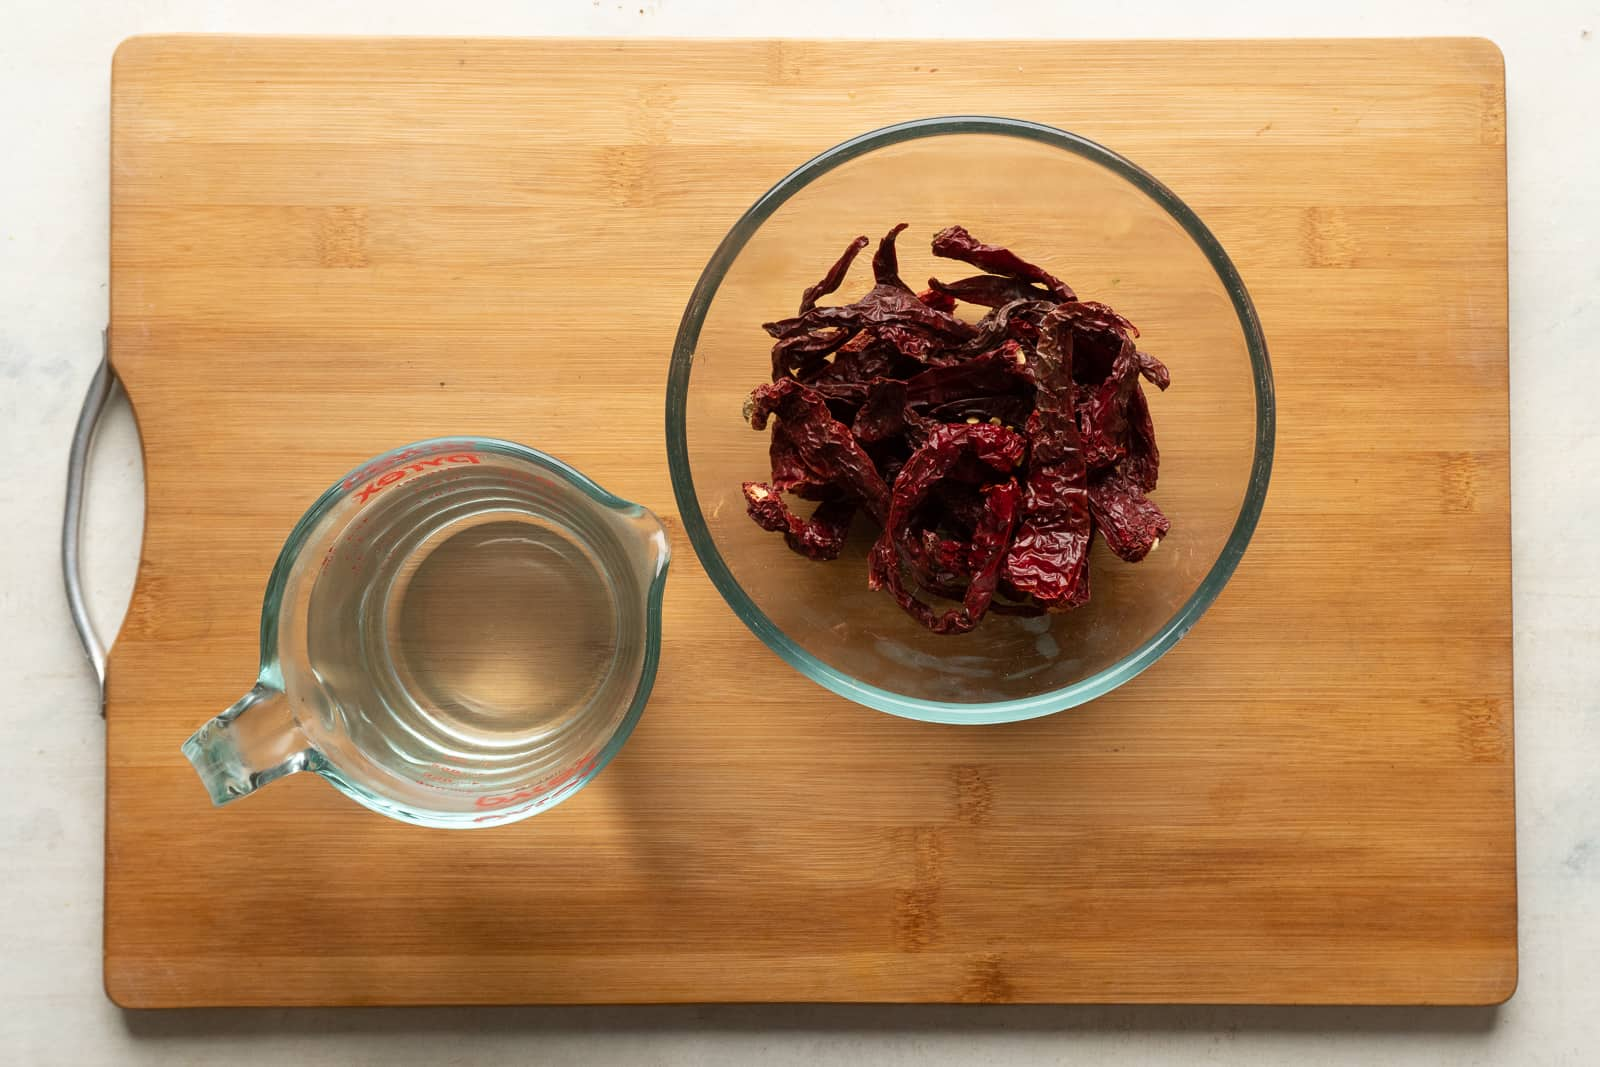 Ingredients for schezwan sauce. Pictures here are chillies and water